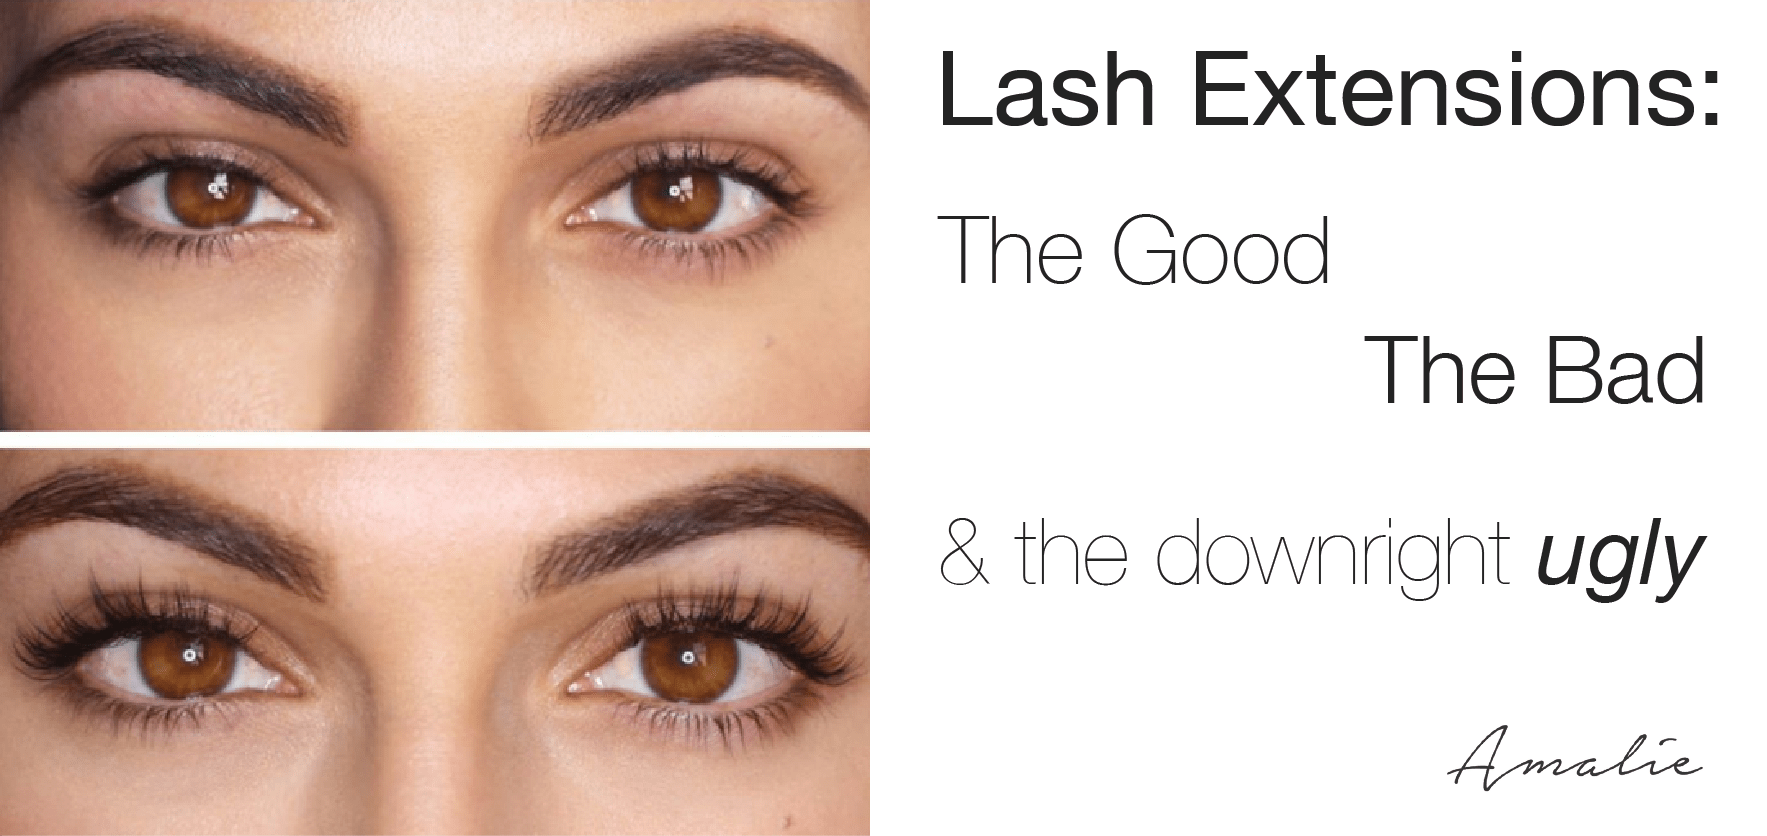 fedc6dd28f0 Eyelash Extension Pros & Cons: The Good, The Bad and the Ugly ...